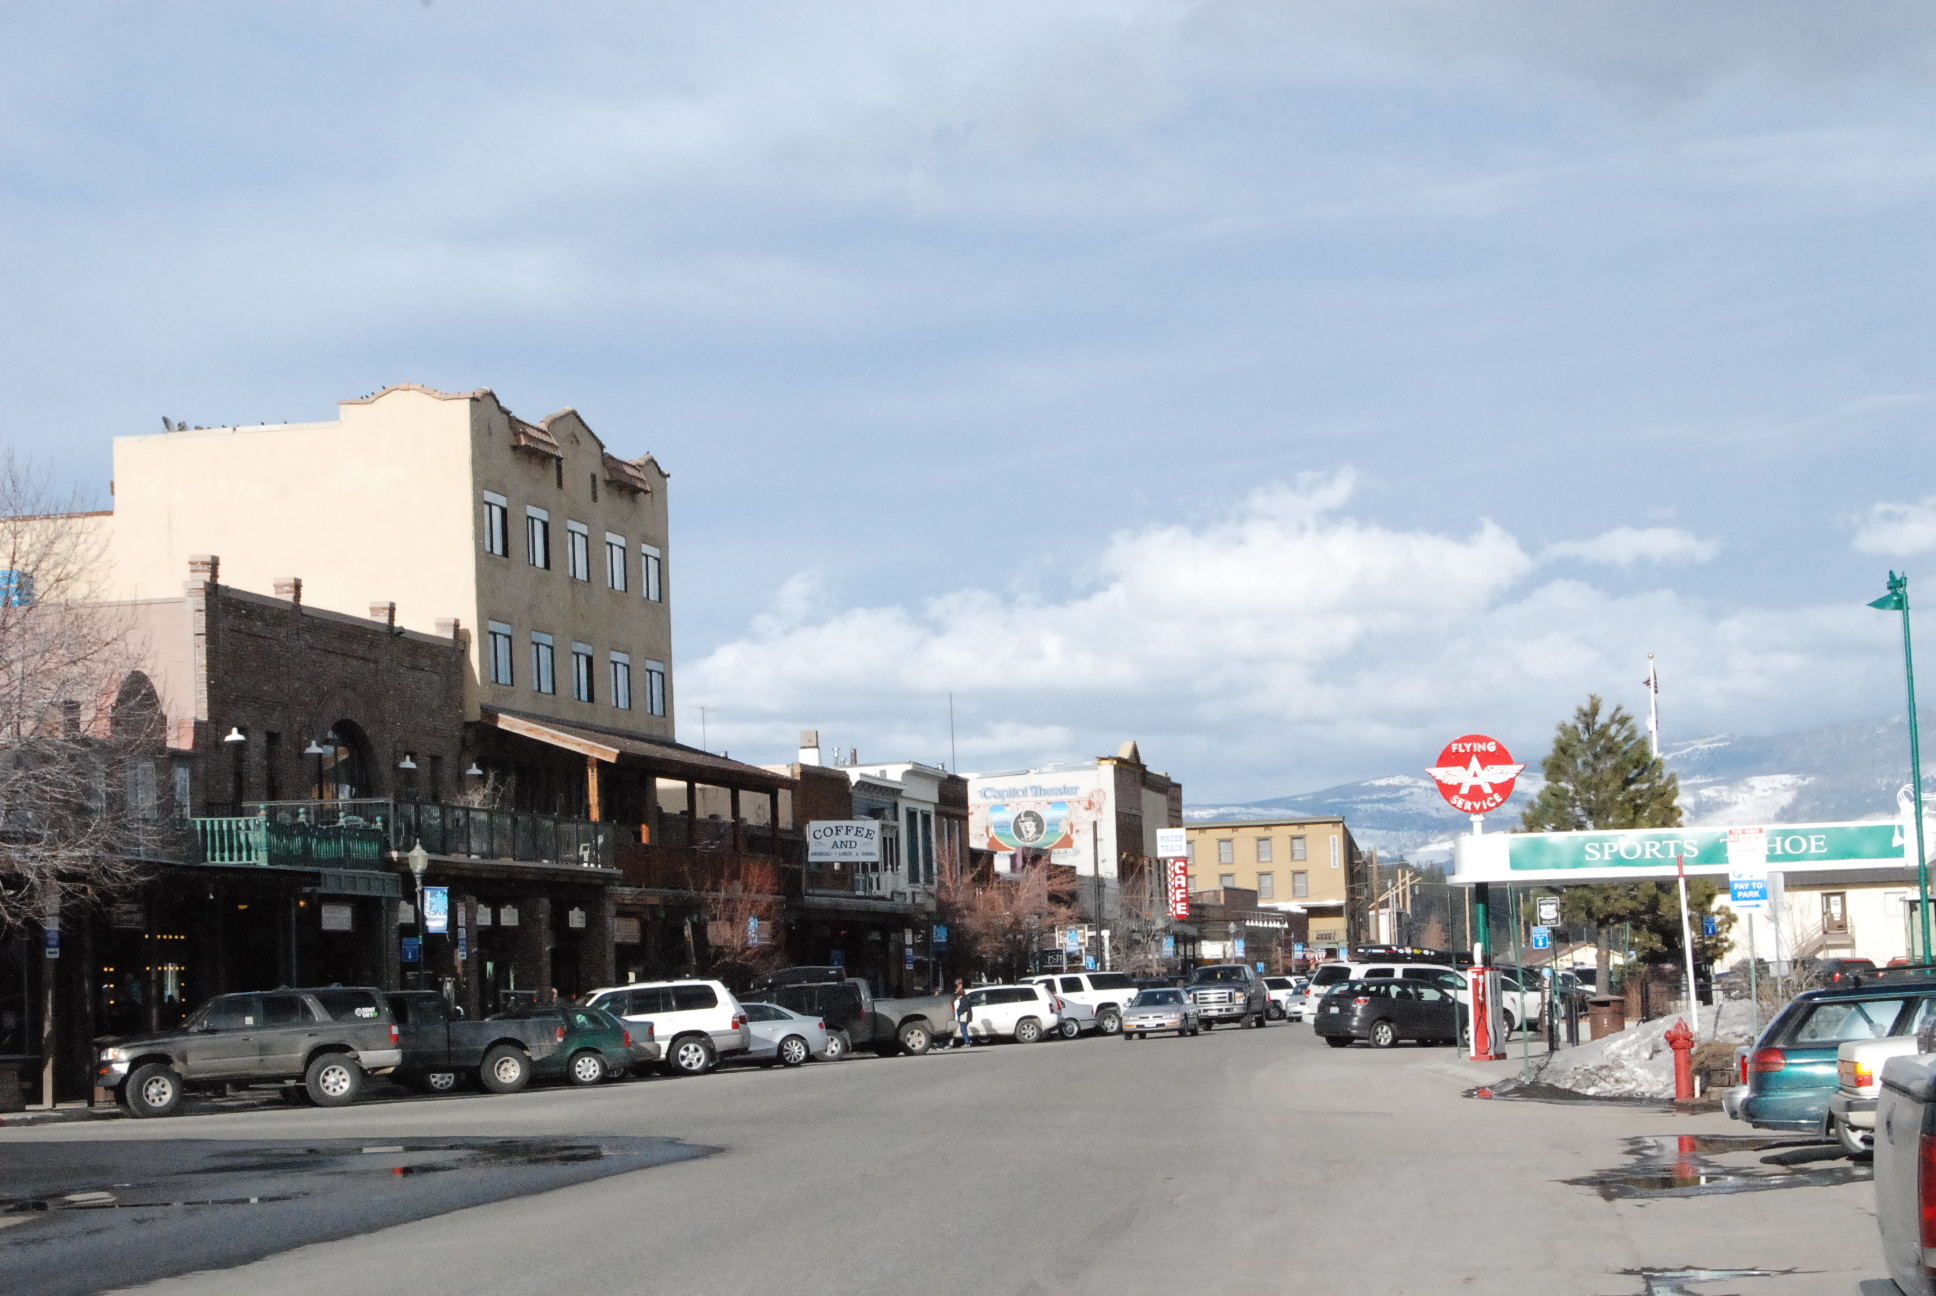 Commercial Property For Sale In Truckee Ca